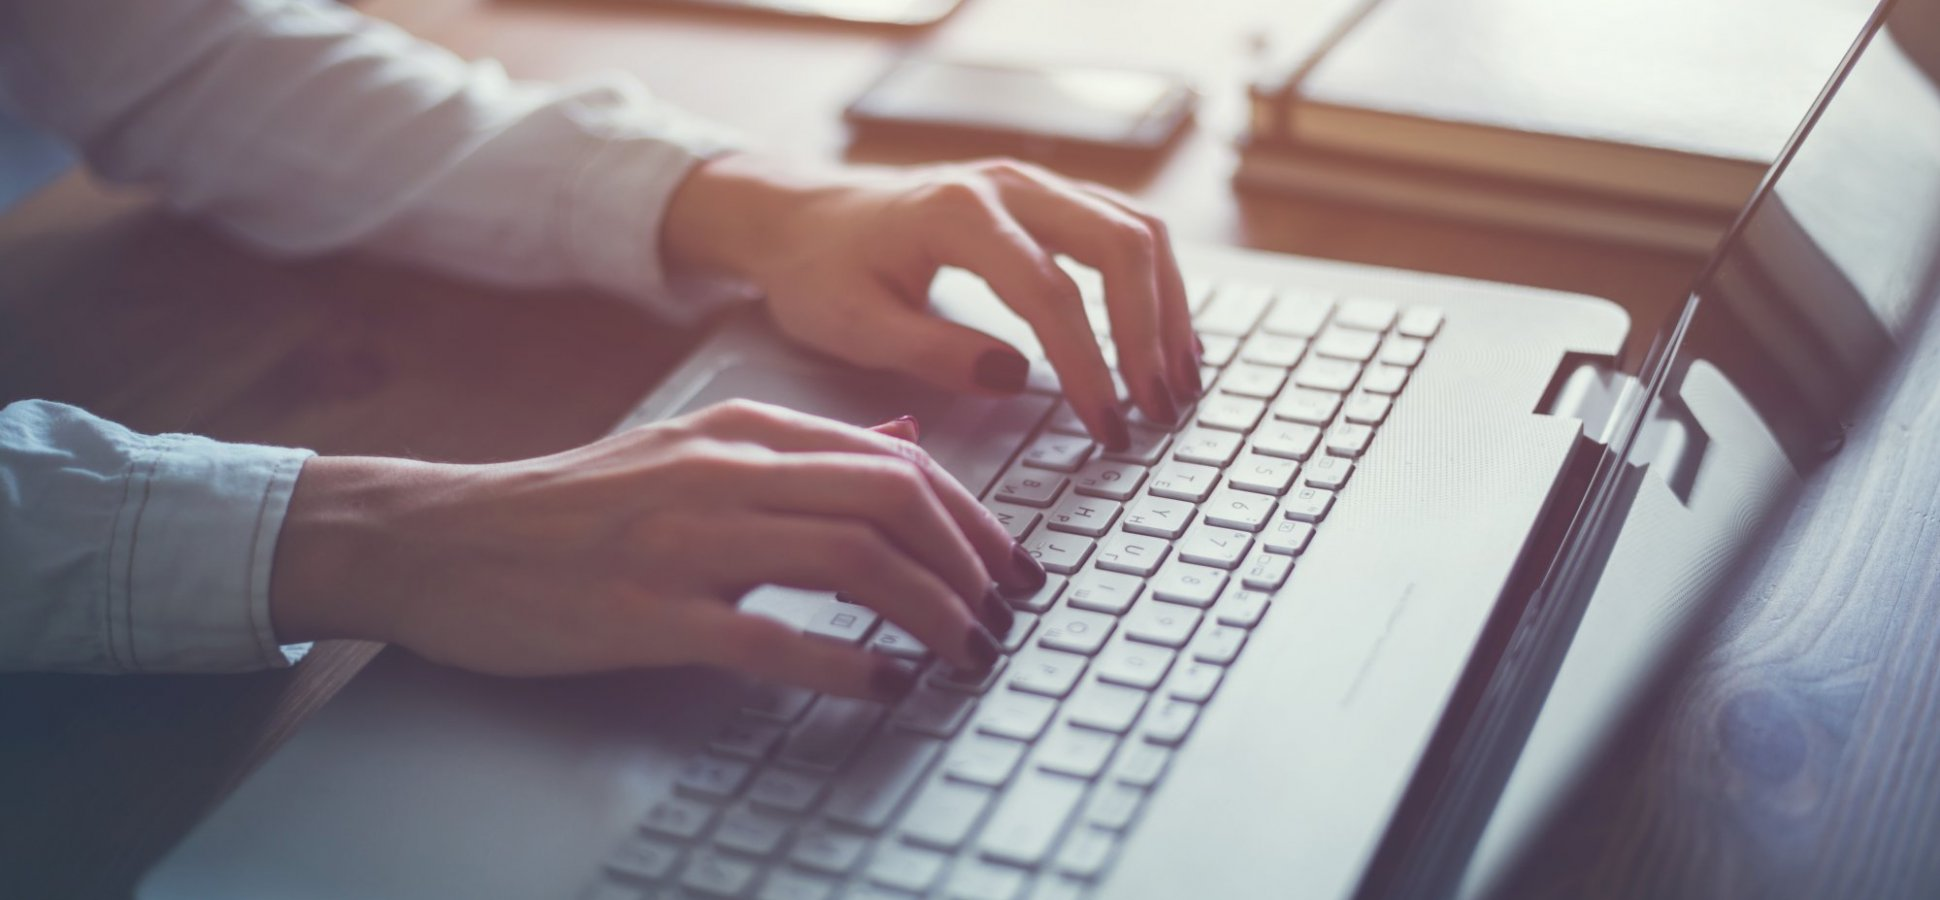 6 Tools You Won't Be Able to Live Without if You Work Remotely